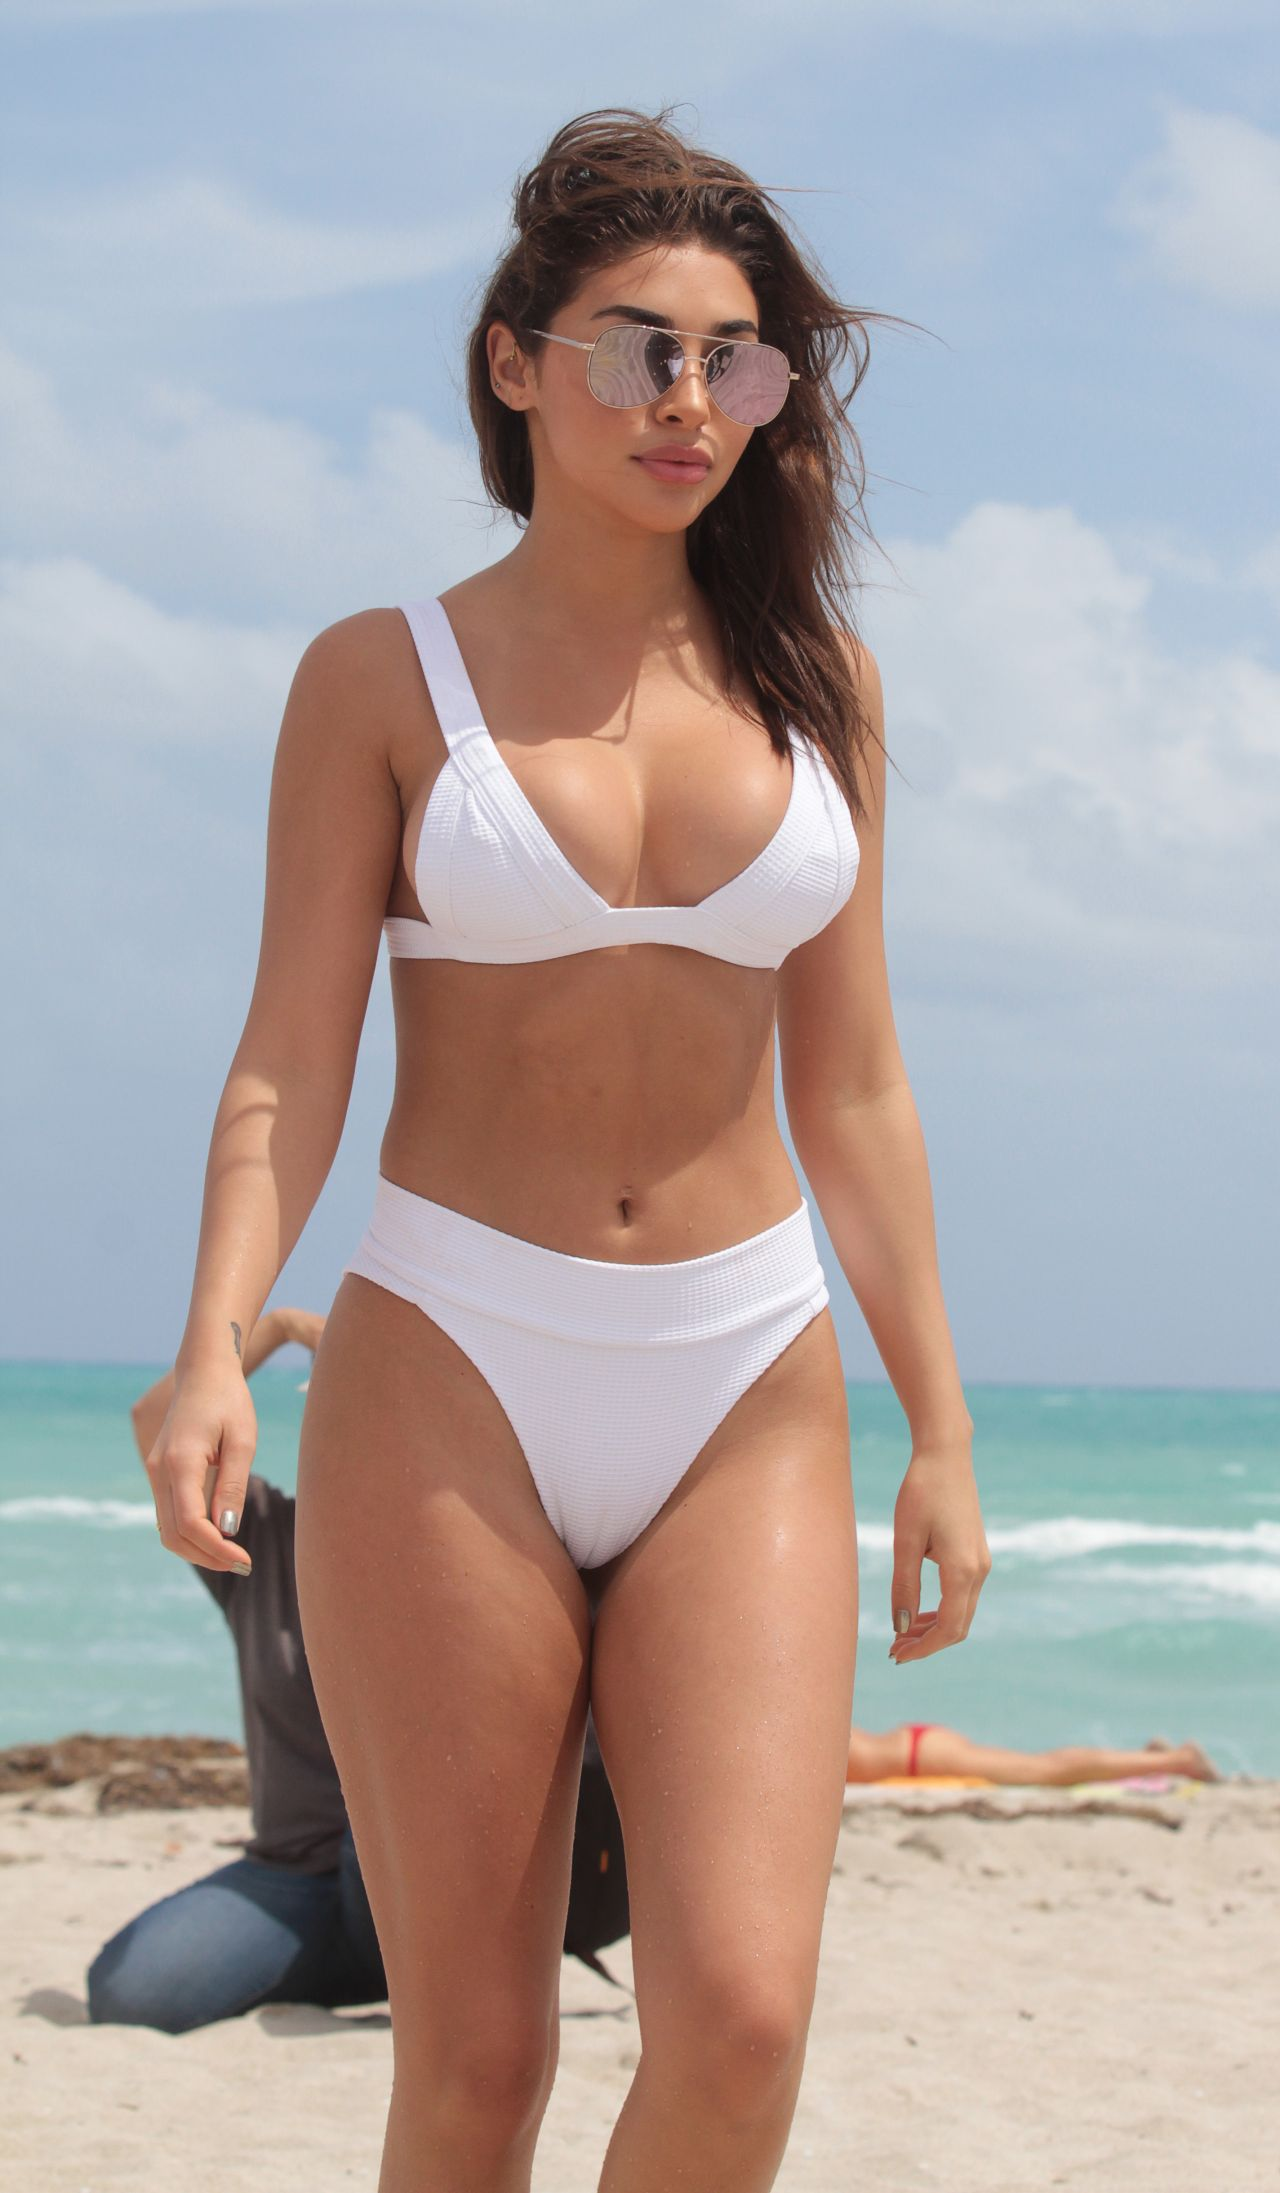 Chantel jeffries in bikini